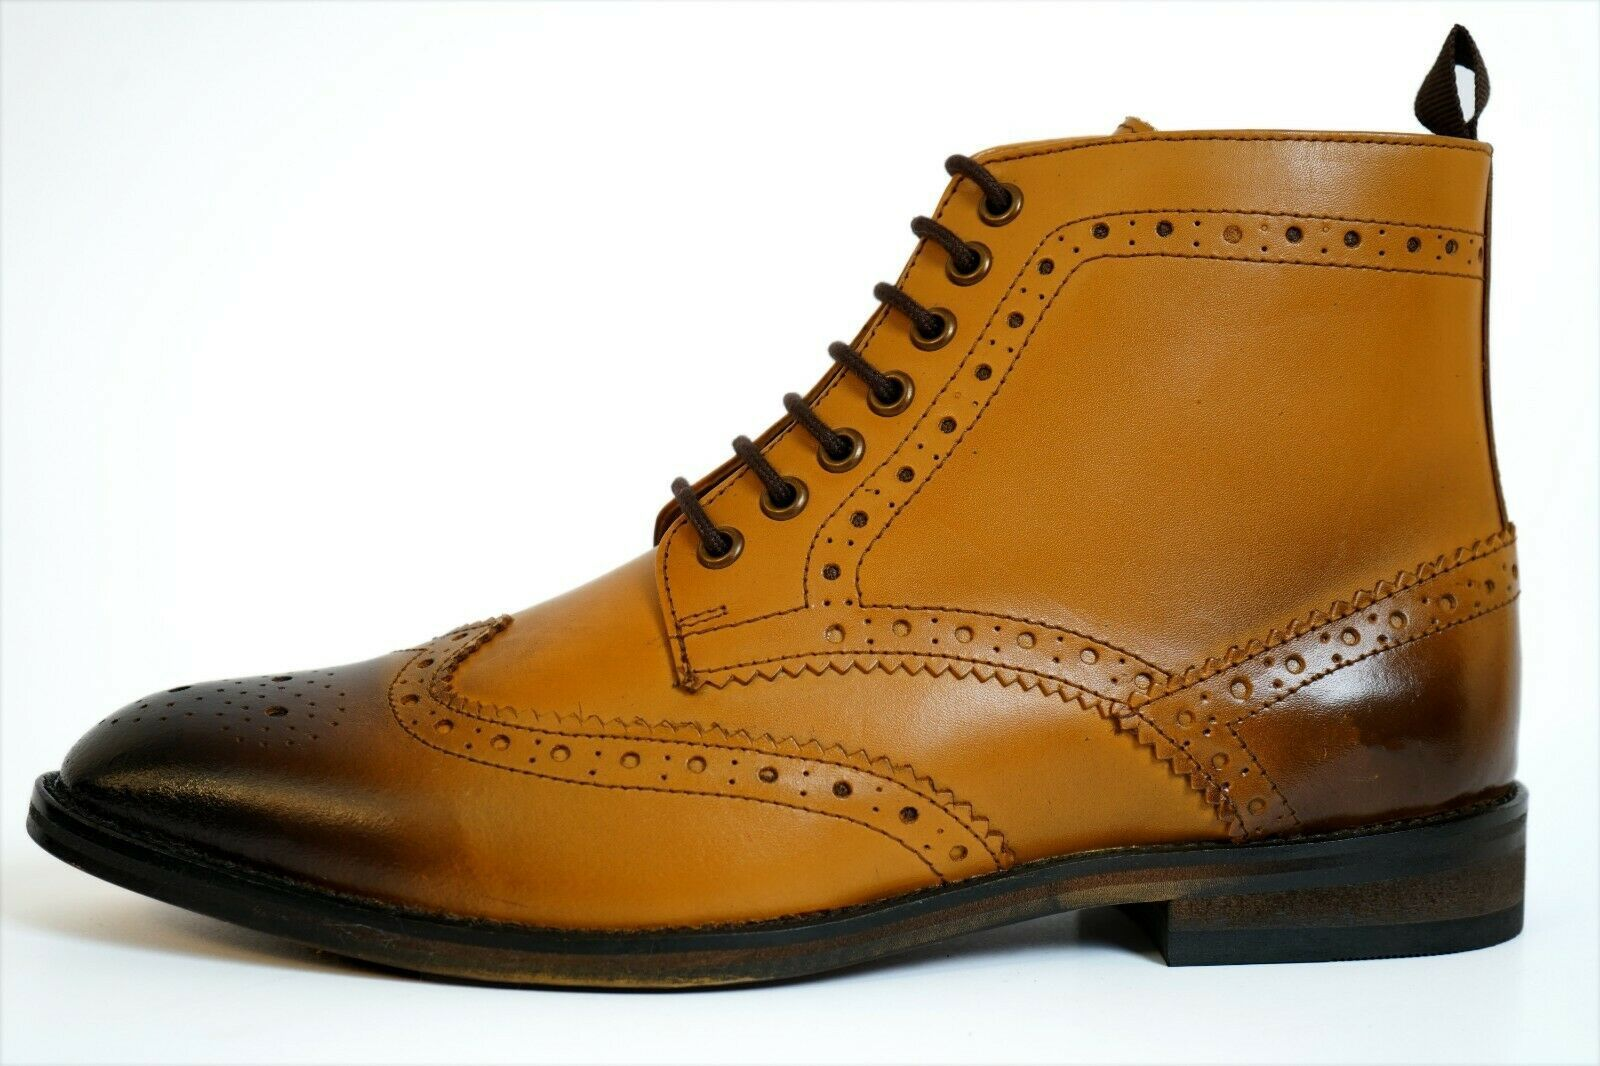 Handmade Men's Tan Burnished Wing Tip Brogue Style High Ankle Lace Up Leathe